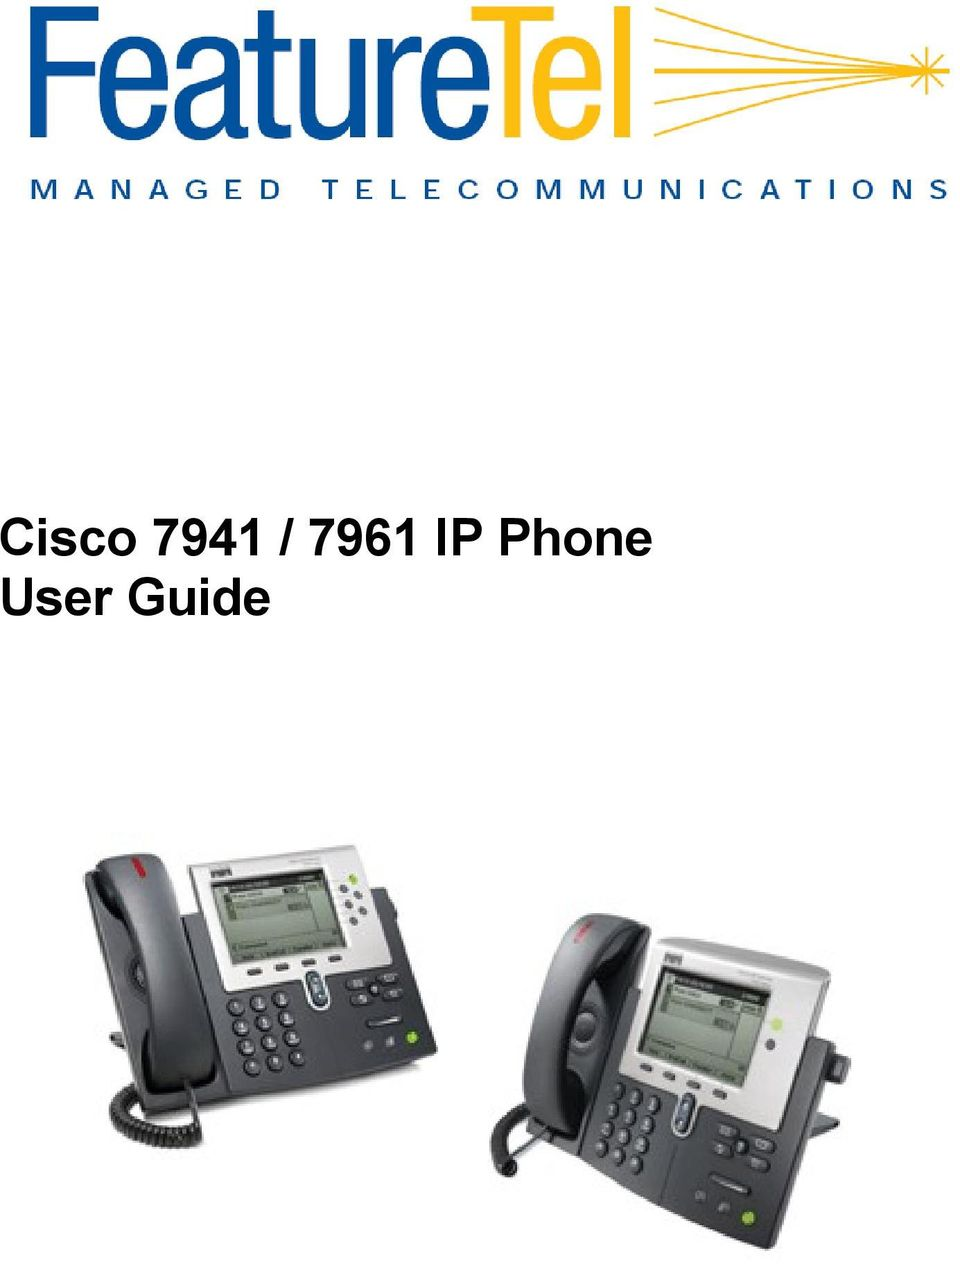 Cisco 6921 unified ip phone user guide.